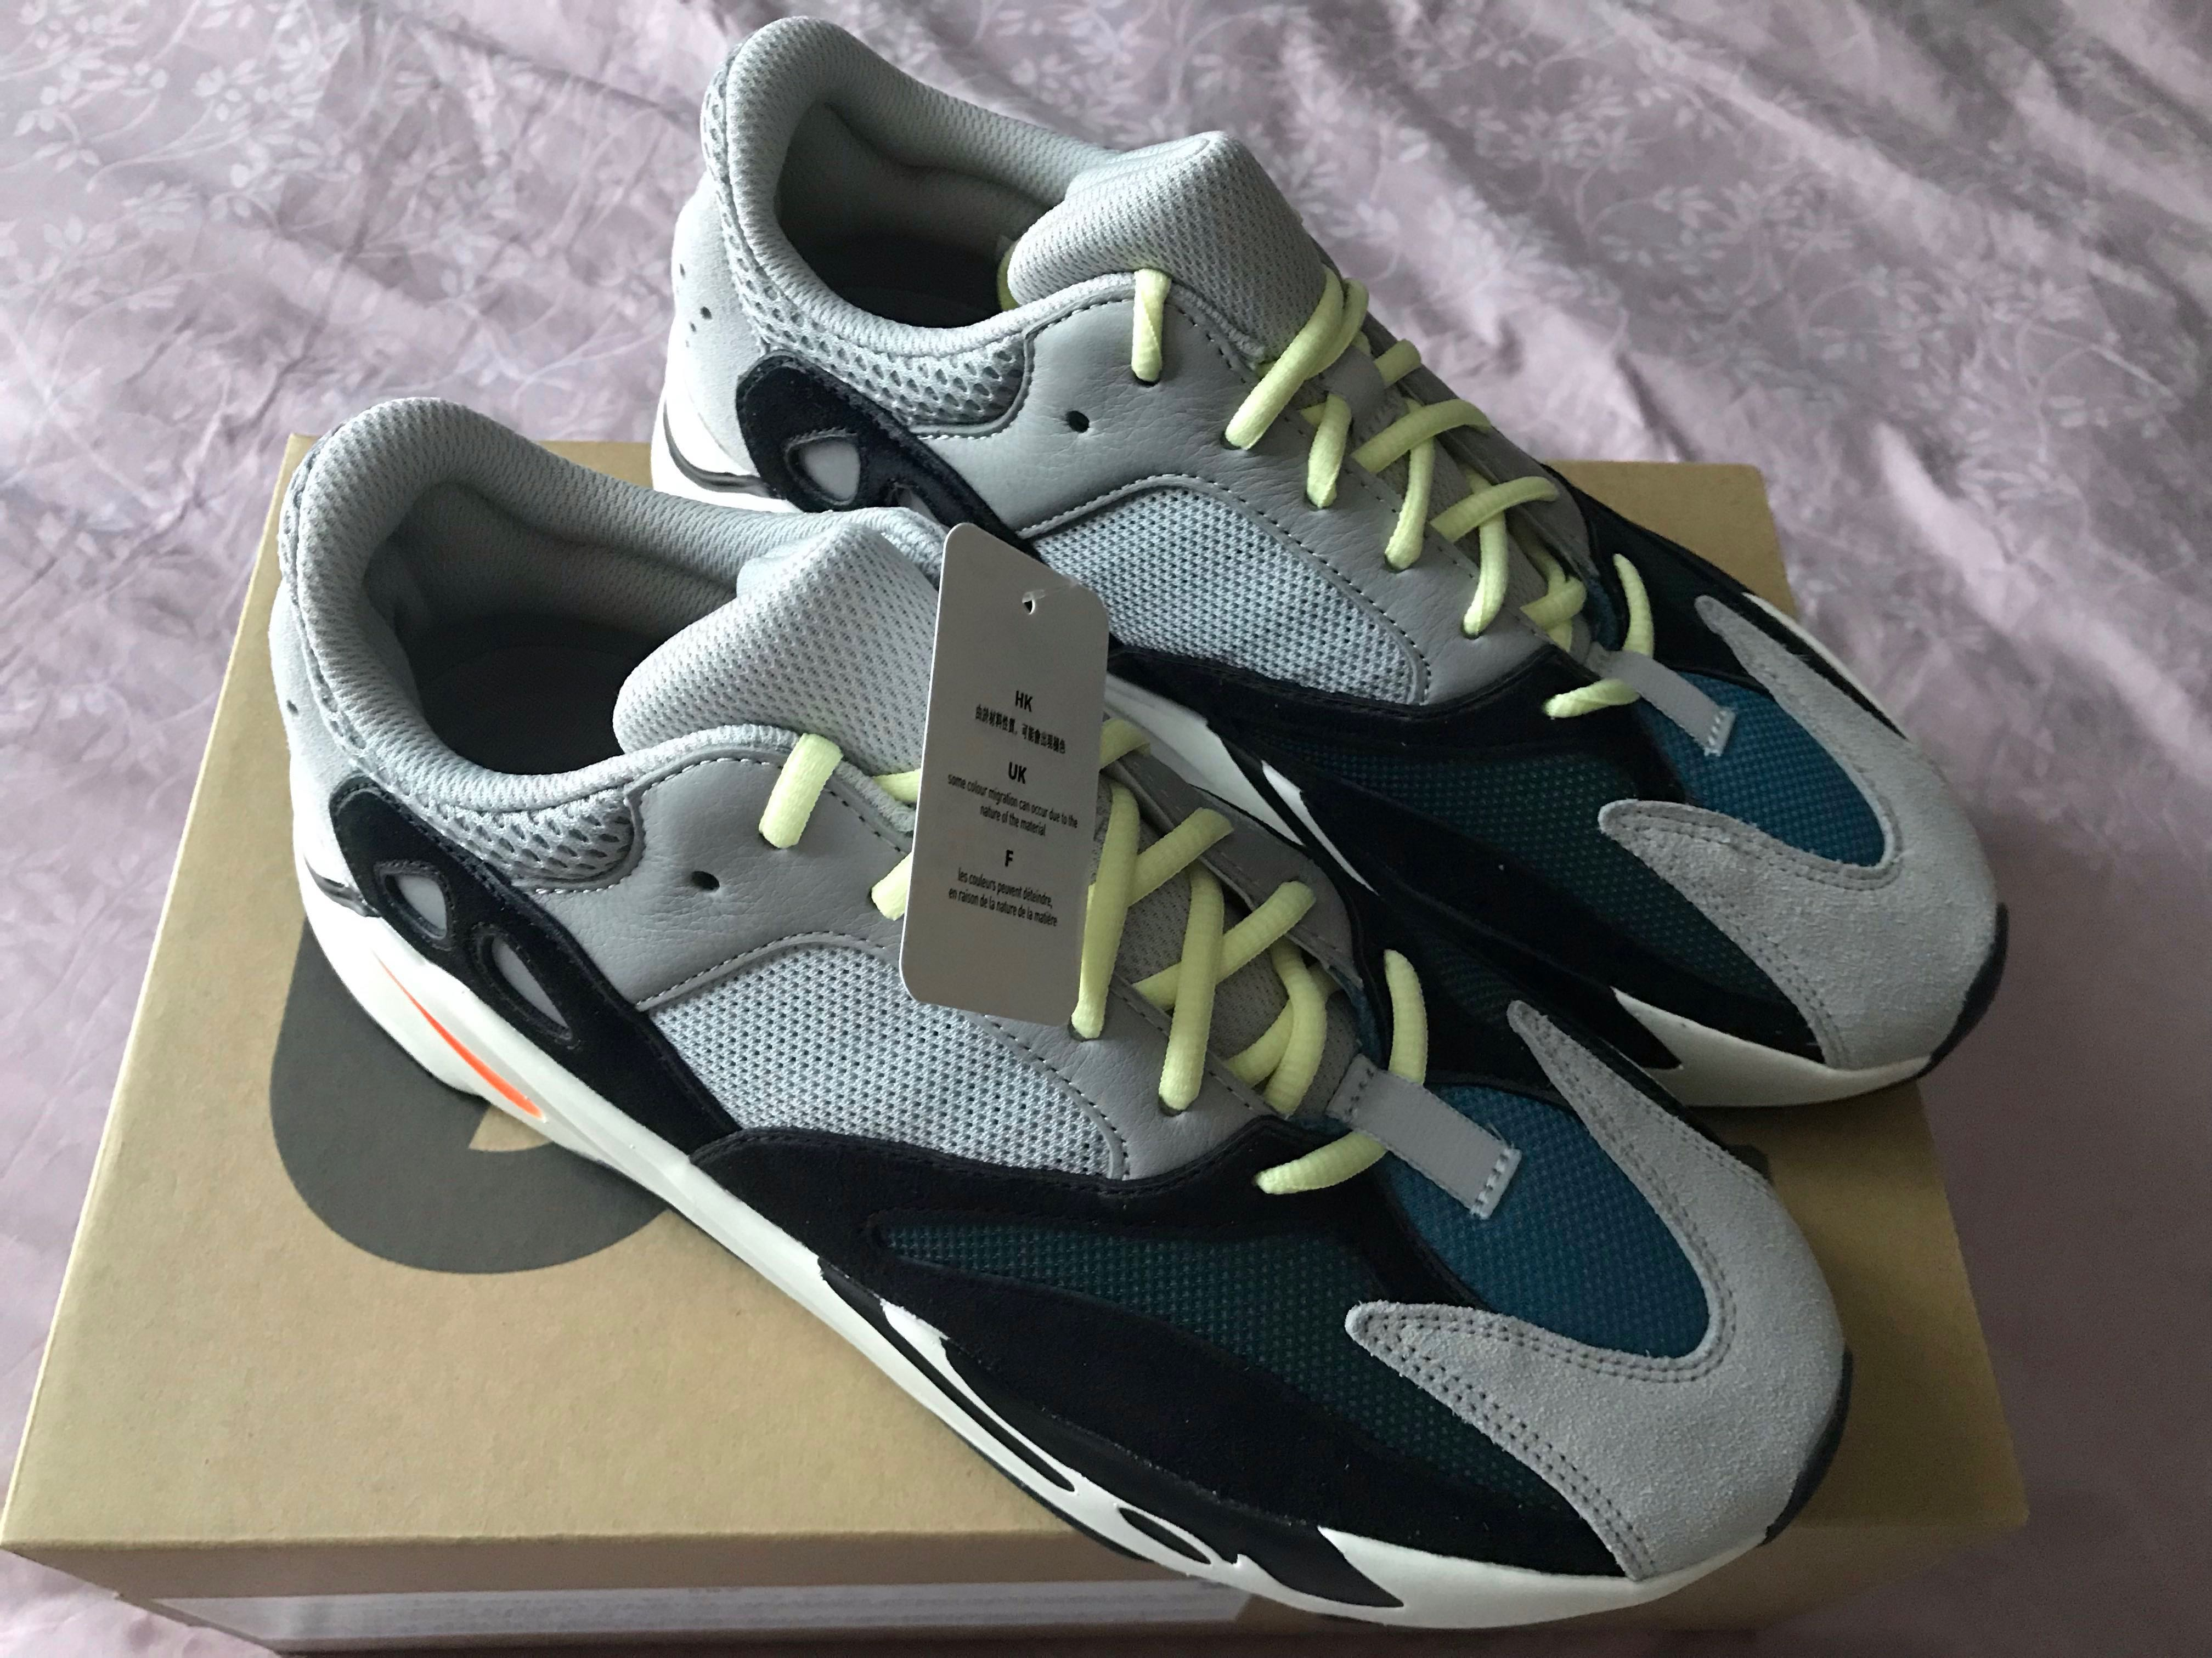 promo code 09e2e 7cafe Yeezy Wave Runner 700 (US 11), Men's Fashion, Footwear ...